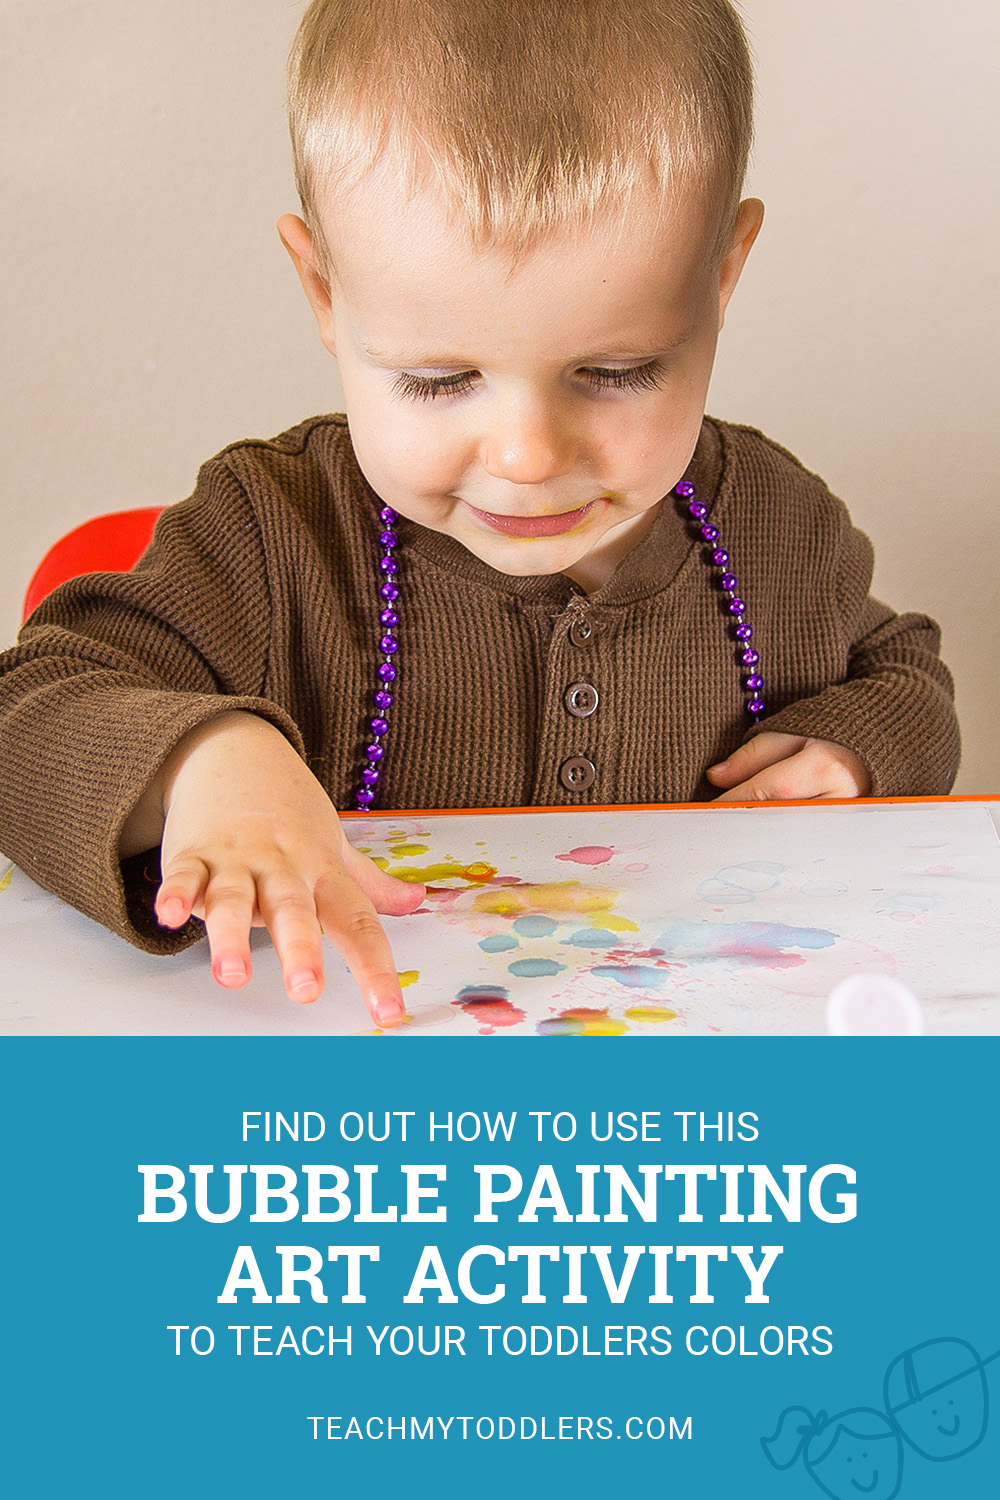 Find out how to use this bubble painting art activity to teach your toddlers colors